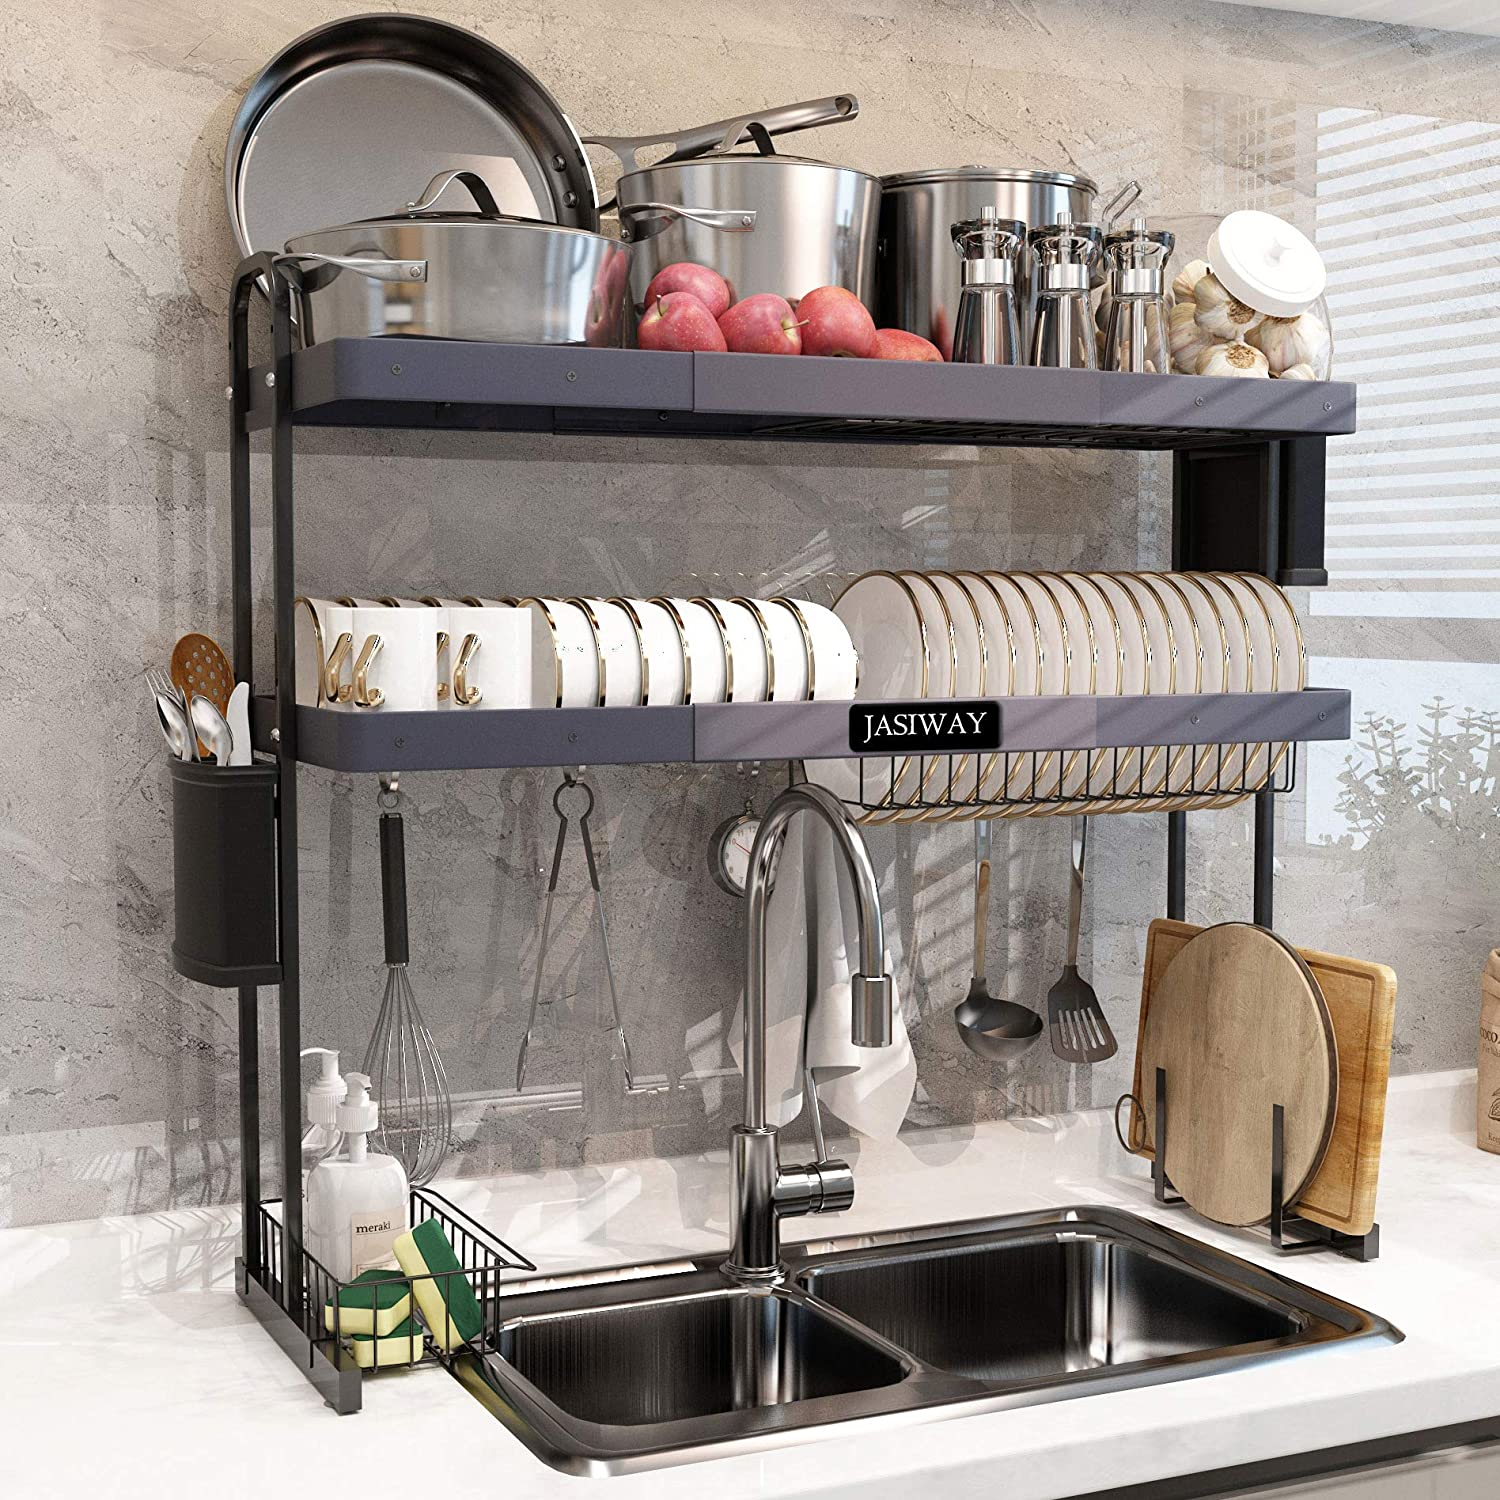 """Over Sink Dish Drying Rack, 2 Tier Stainless Steel Large Storage Adjustable Kitchen Dish Rack (27.5"""" - 33.5""""), Expandable Dish Drainer Shelf Rack with Utensil Holder and Drainboard Hooks"""